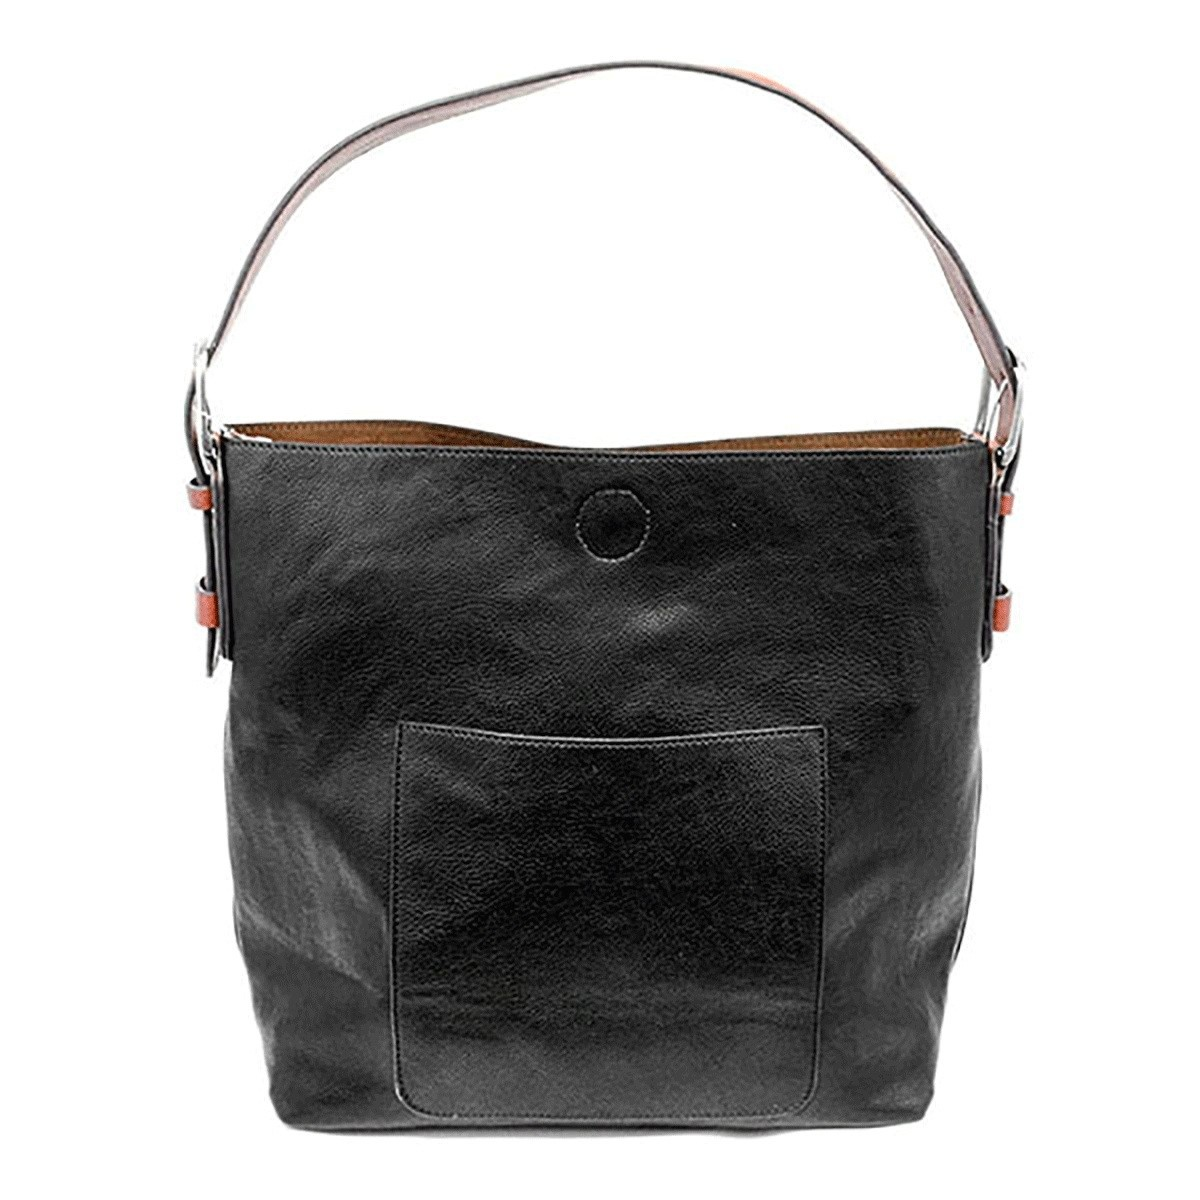 Joy Susan Joy Susan Classic Hobo Handbag Black with Cedar Handle